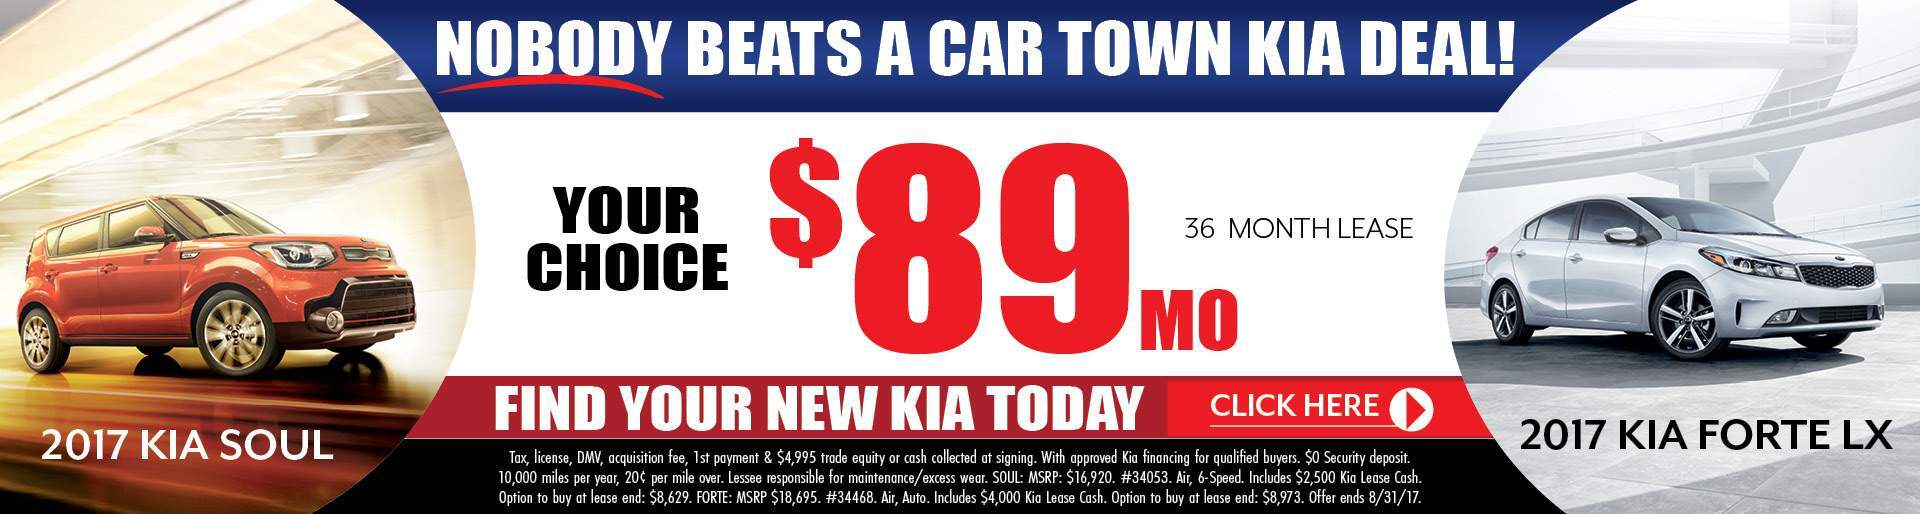 Kia Dealership Nicholasville Ky Used Cars Car Town Kia